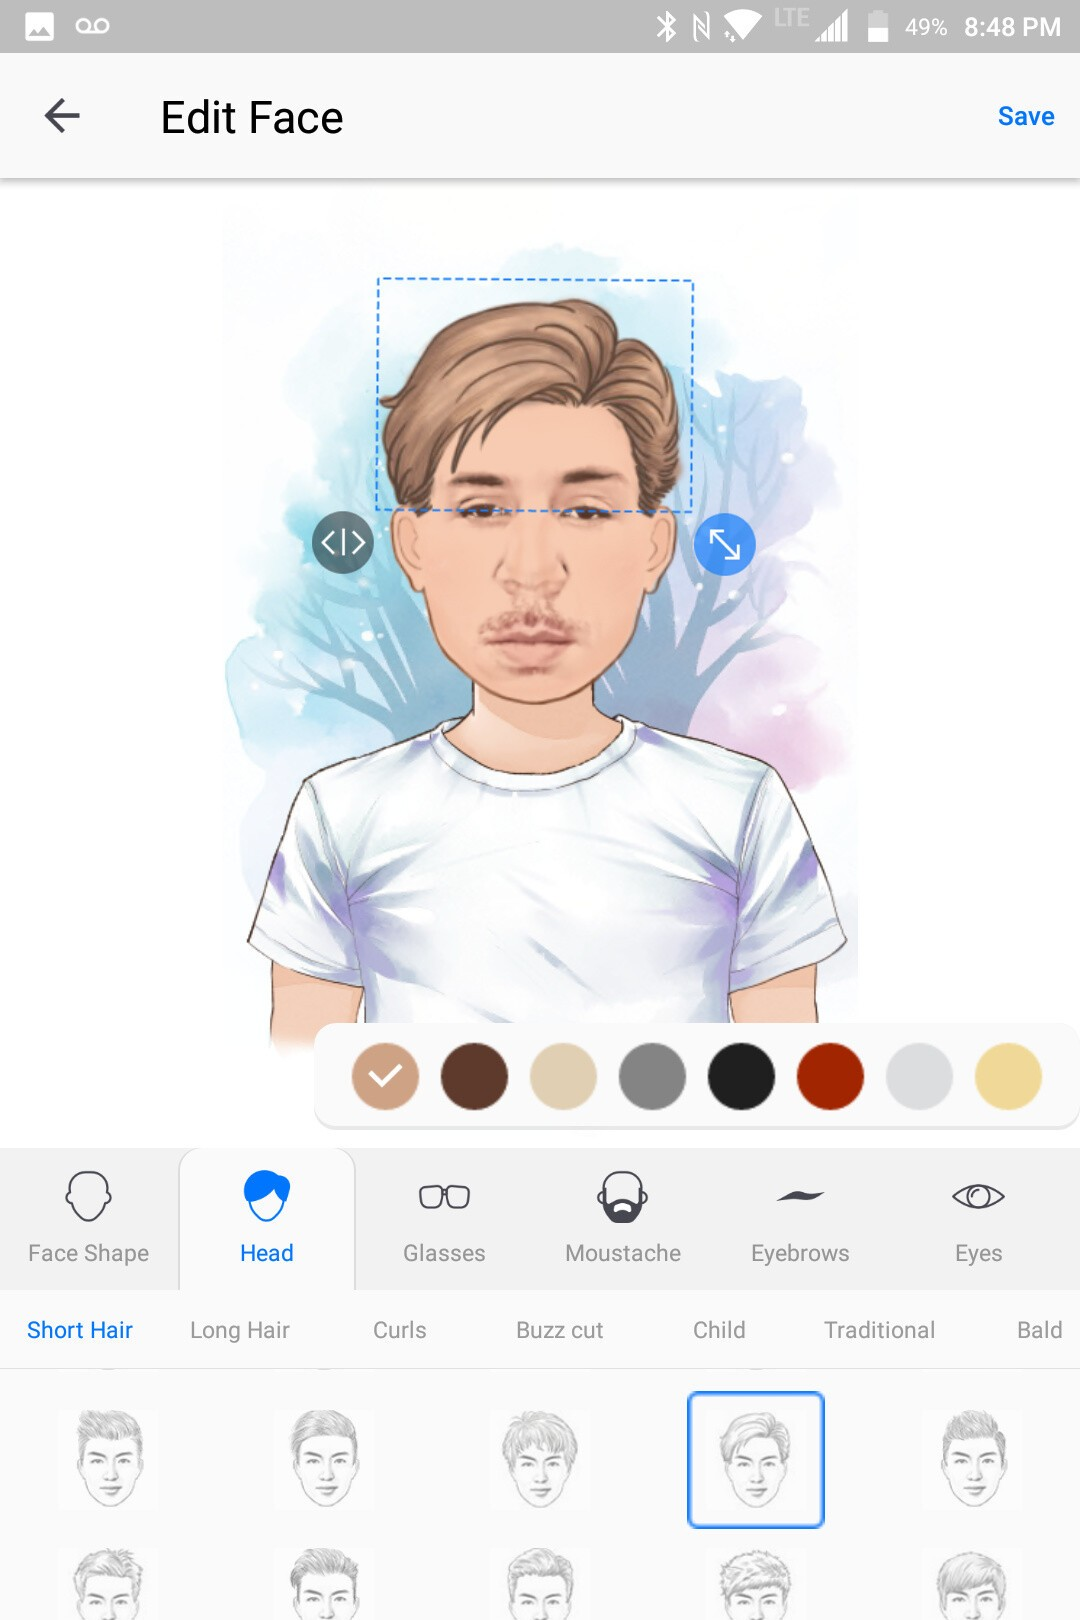 You'll soon be able to create your own personalized cartoons and animated emoji with BBMoji on BBM!